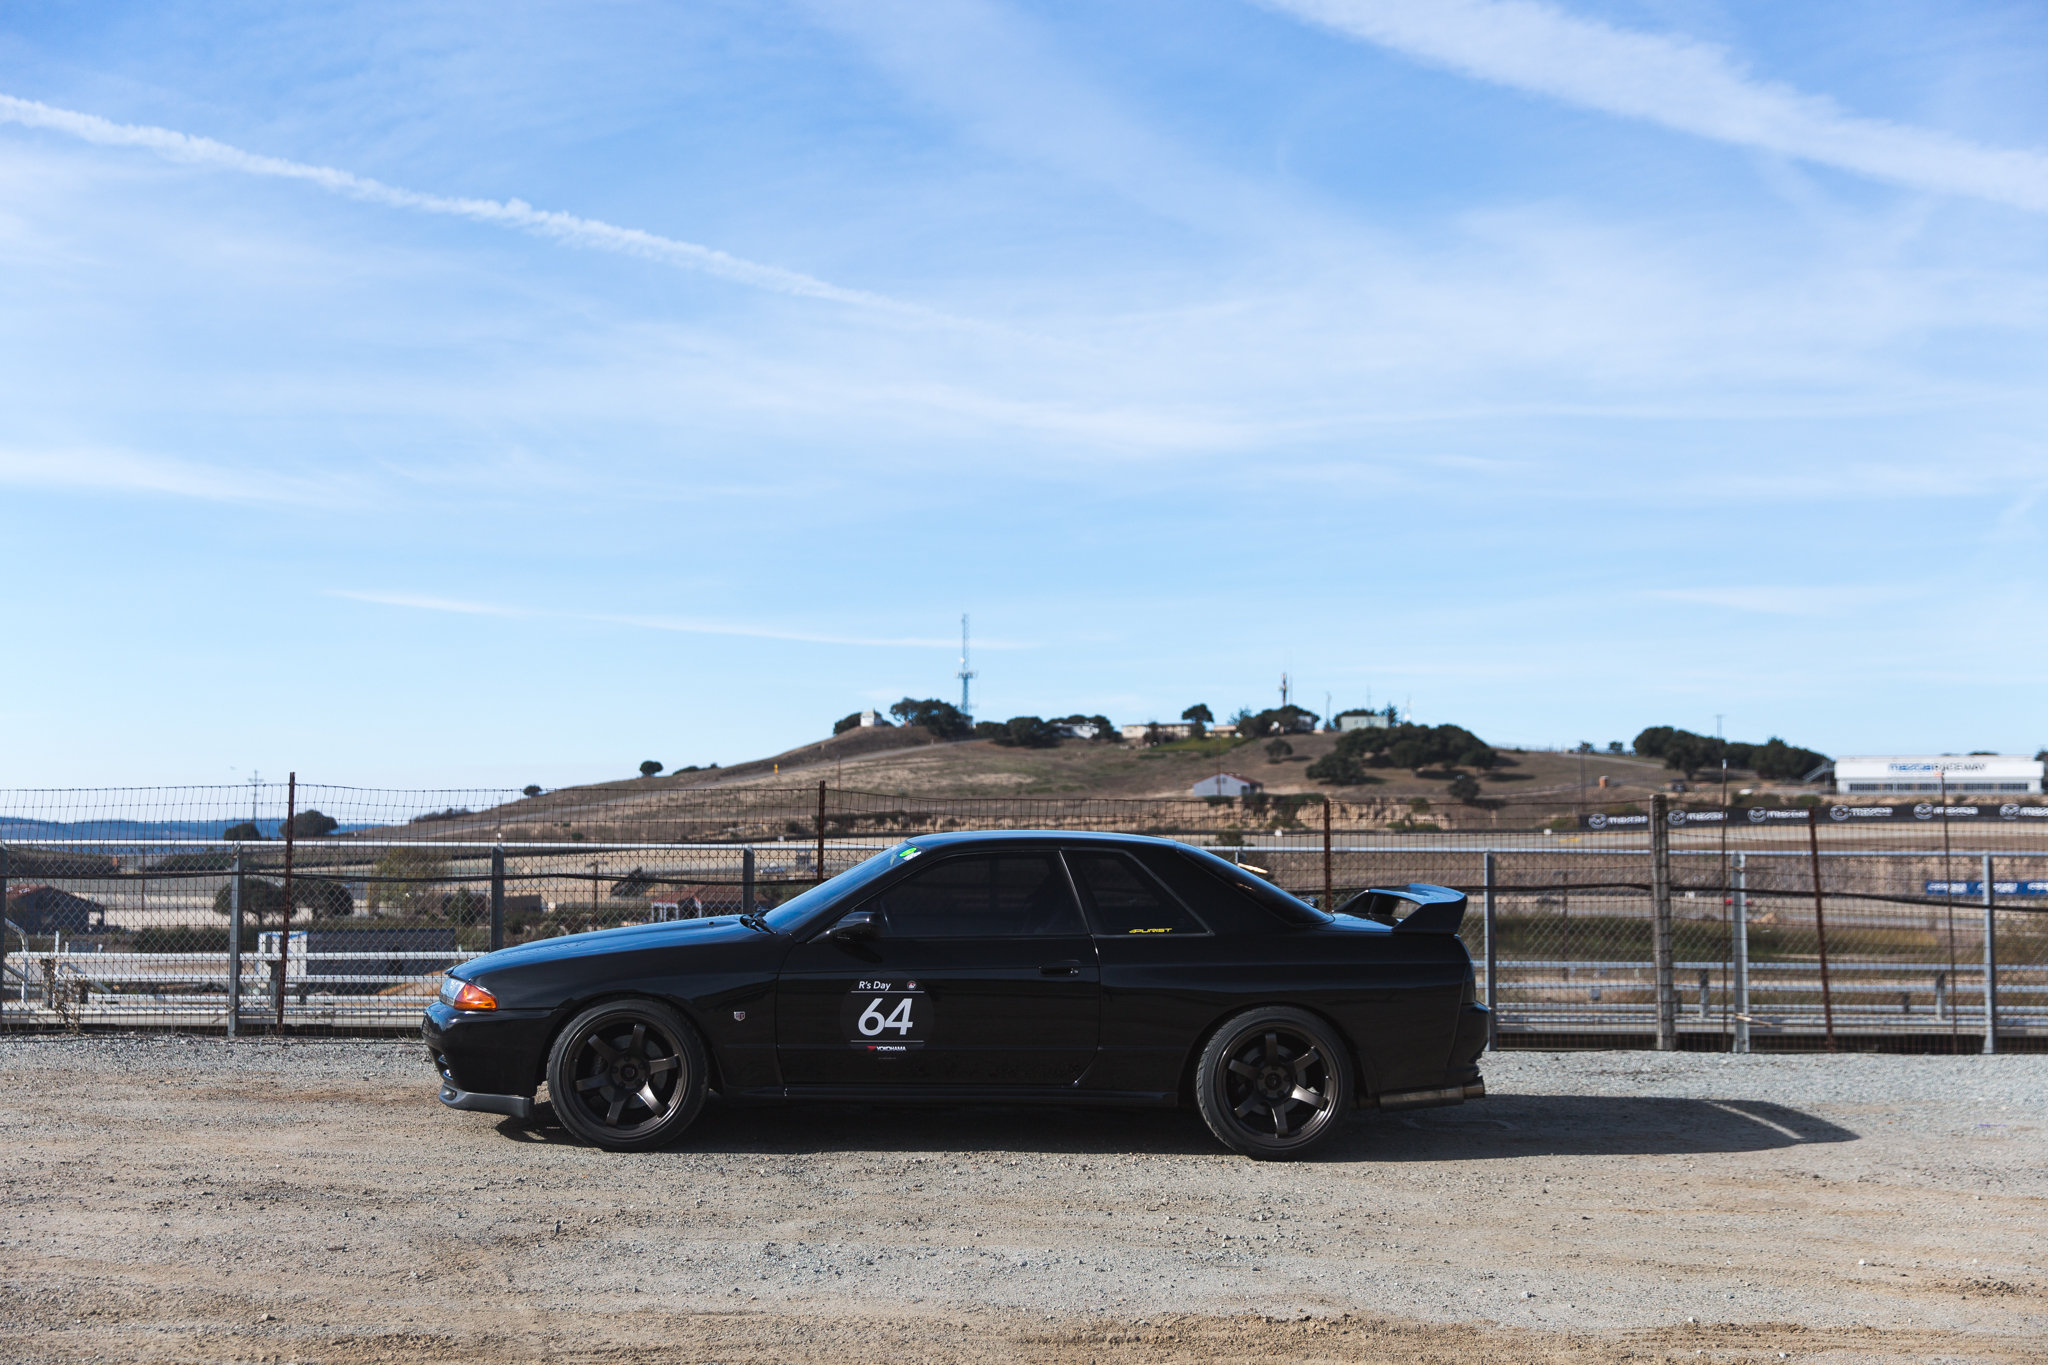 Stay_Driven_Rs_Day-24.jpg